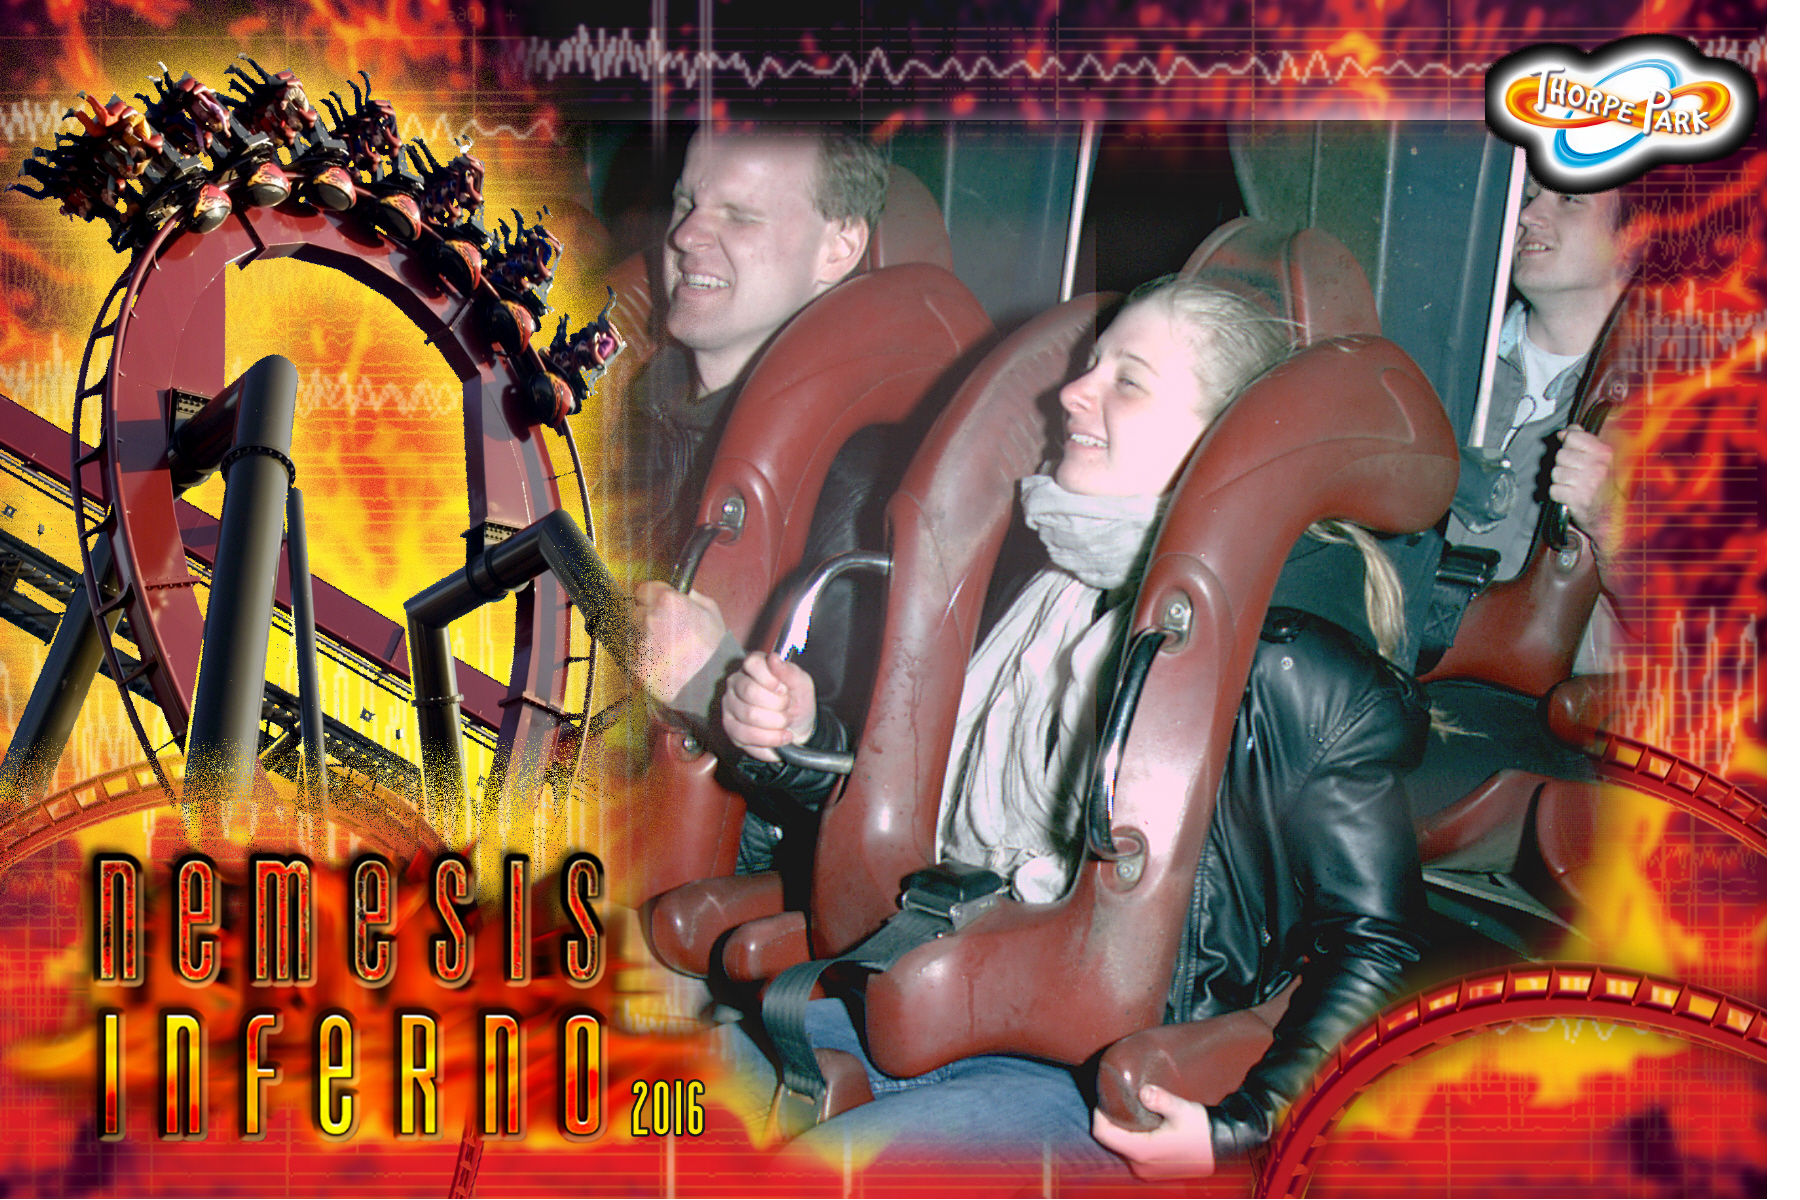 Onride-Foto | Bild © by Christian Ohrens, Recorded by Thorpe Park/Picsolve